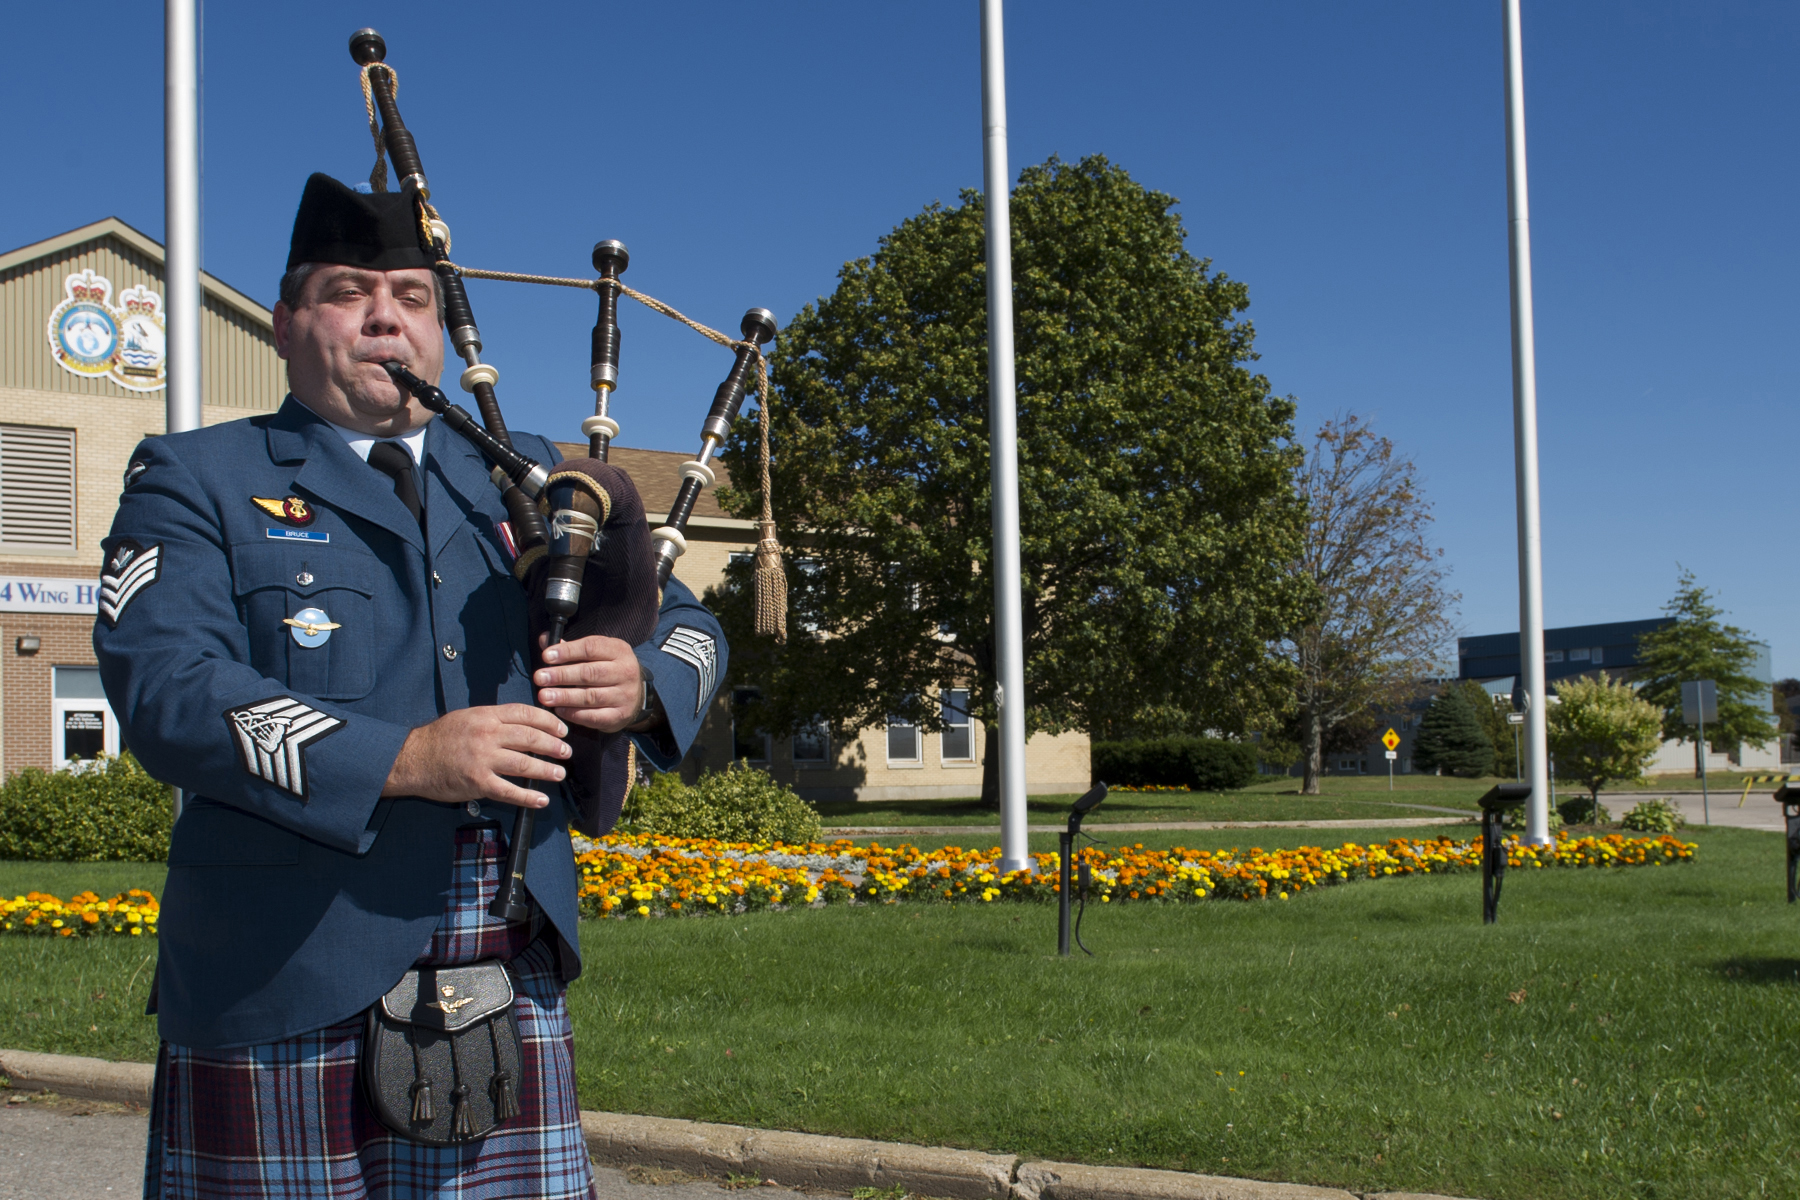 During the 2017 VPI memorial service held on October 1, 2017, at 14 Wing Greenwood, Nova Scotia, Sergeant Andrew Bruce of 14 Wing Pipes and Drums plays the Lament. PHOTO: Master Corporal Rory Wilson, GD14-2017-0602-004